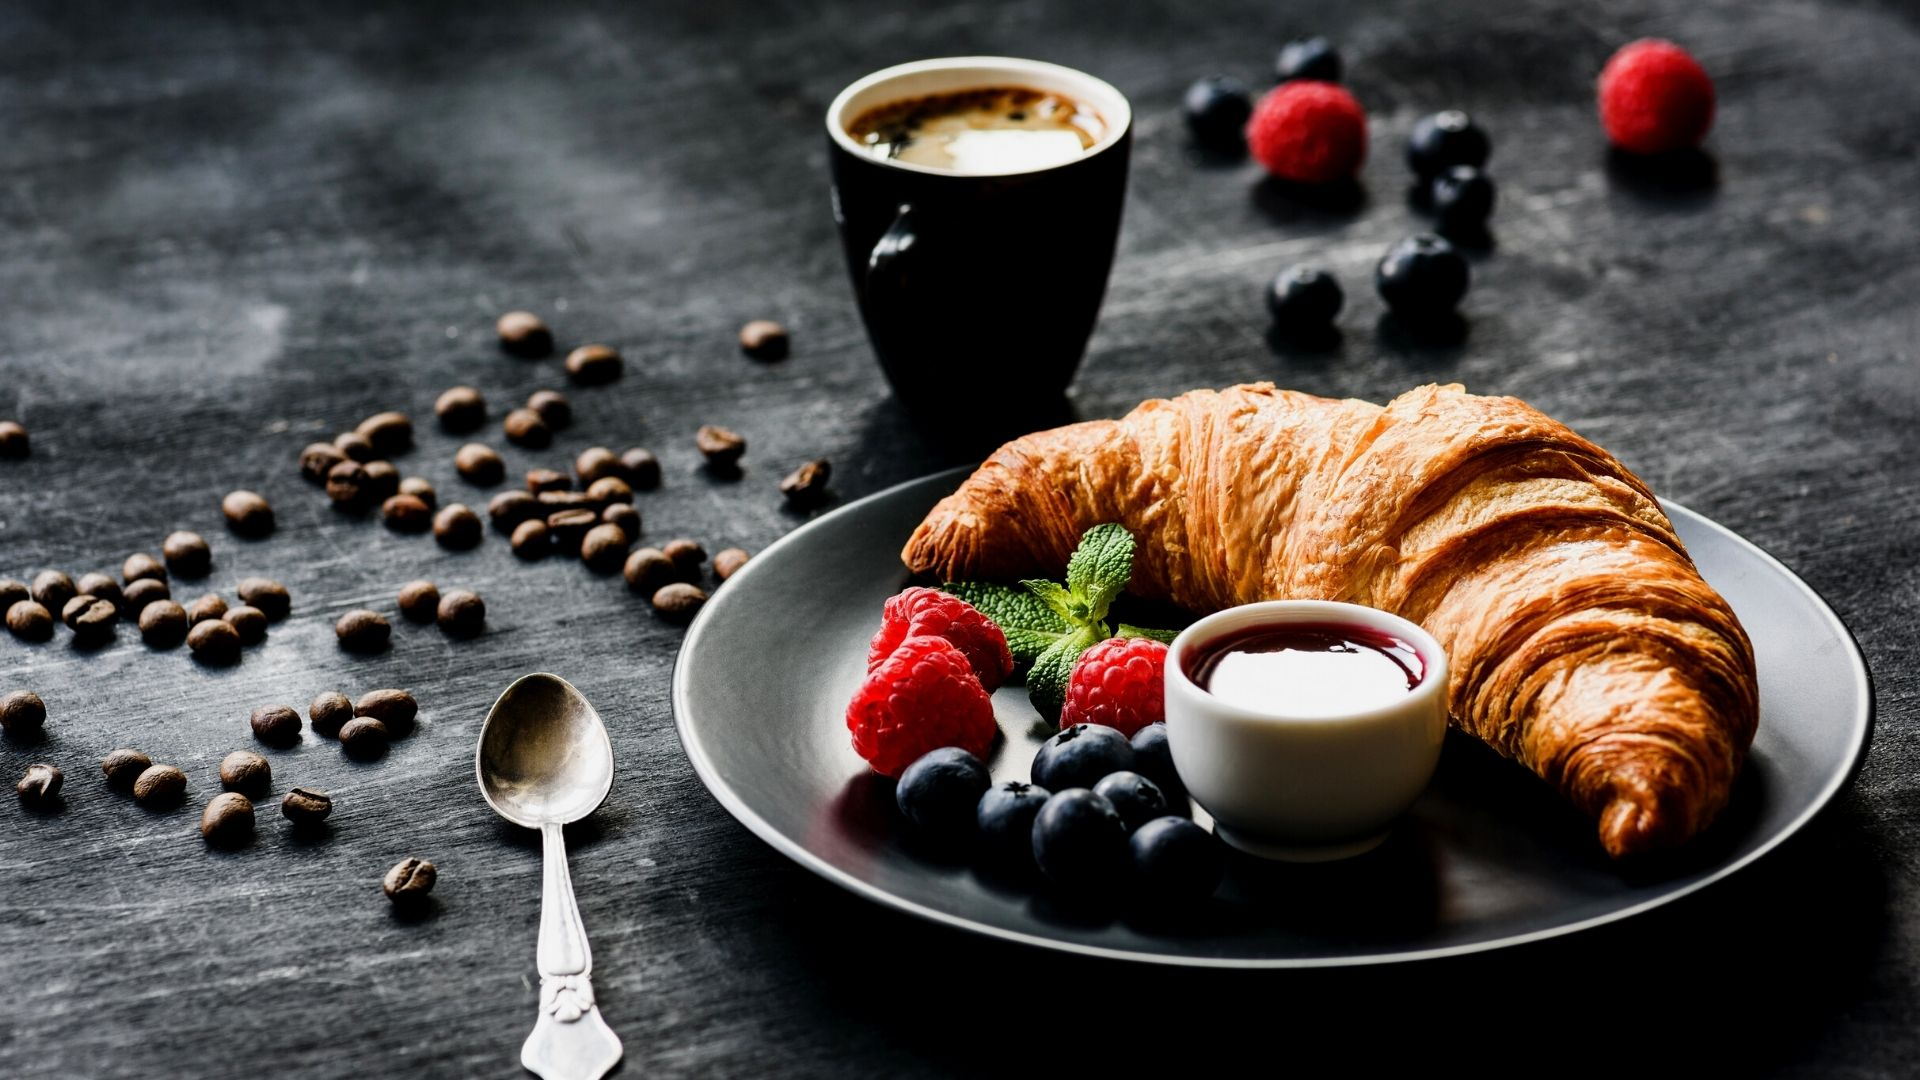 You Can Trust A Croissant If It's French